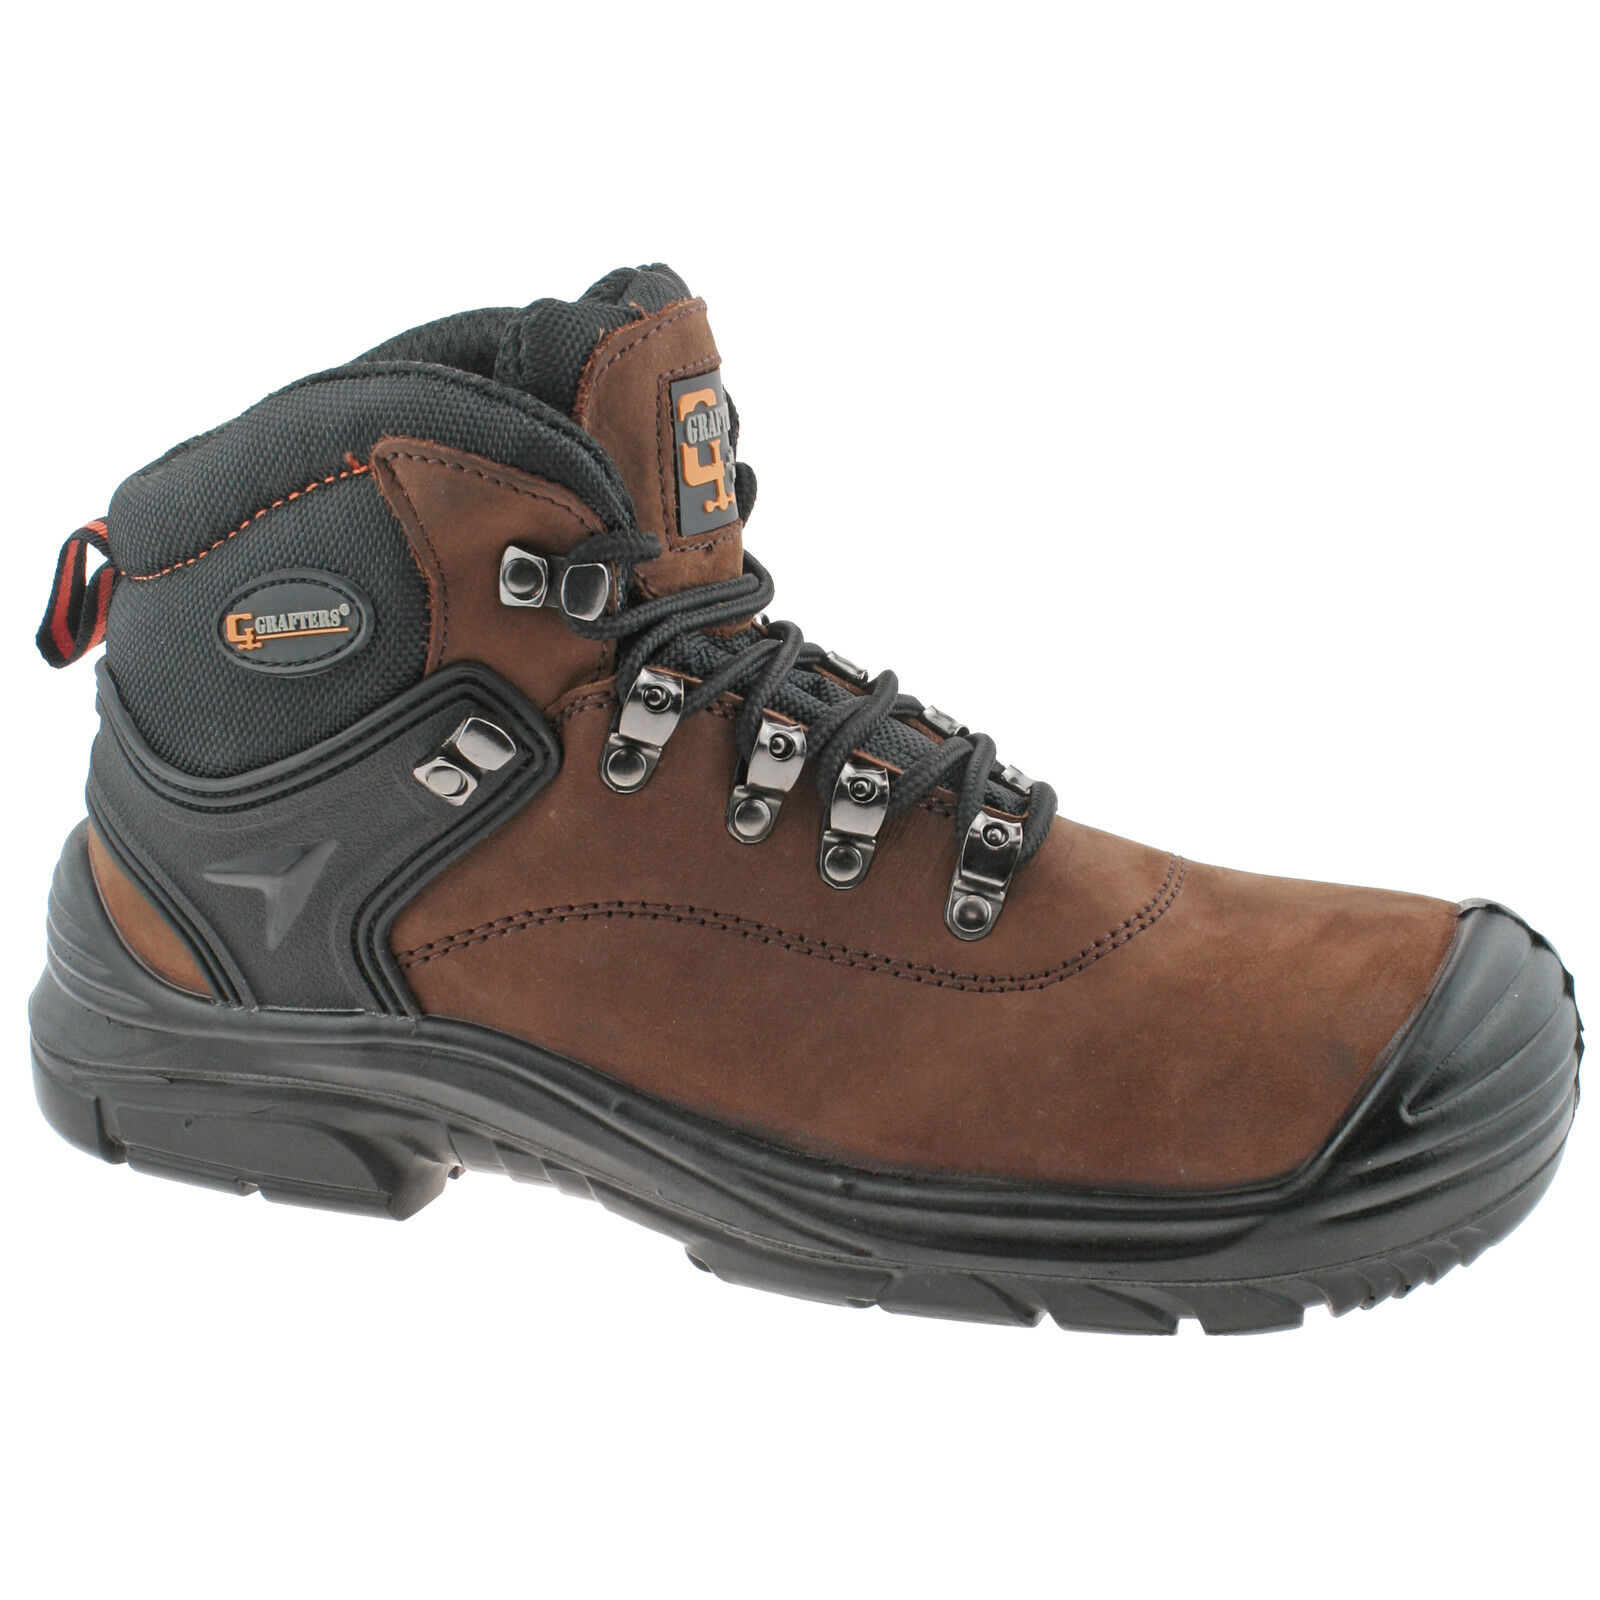 8e2166f5358 Details about MENS GRAFTERS BROWN LEATHER WATERPROOF WIDE FIT LACE UP  SAFETY BOOTS M9508B KD